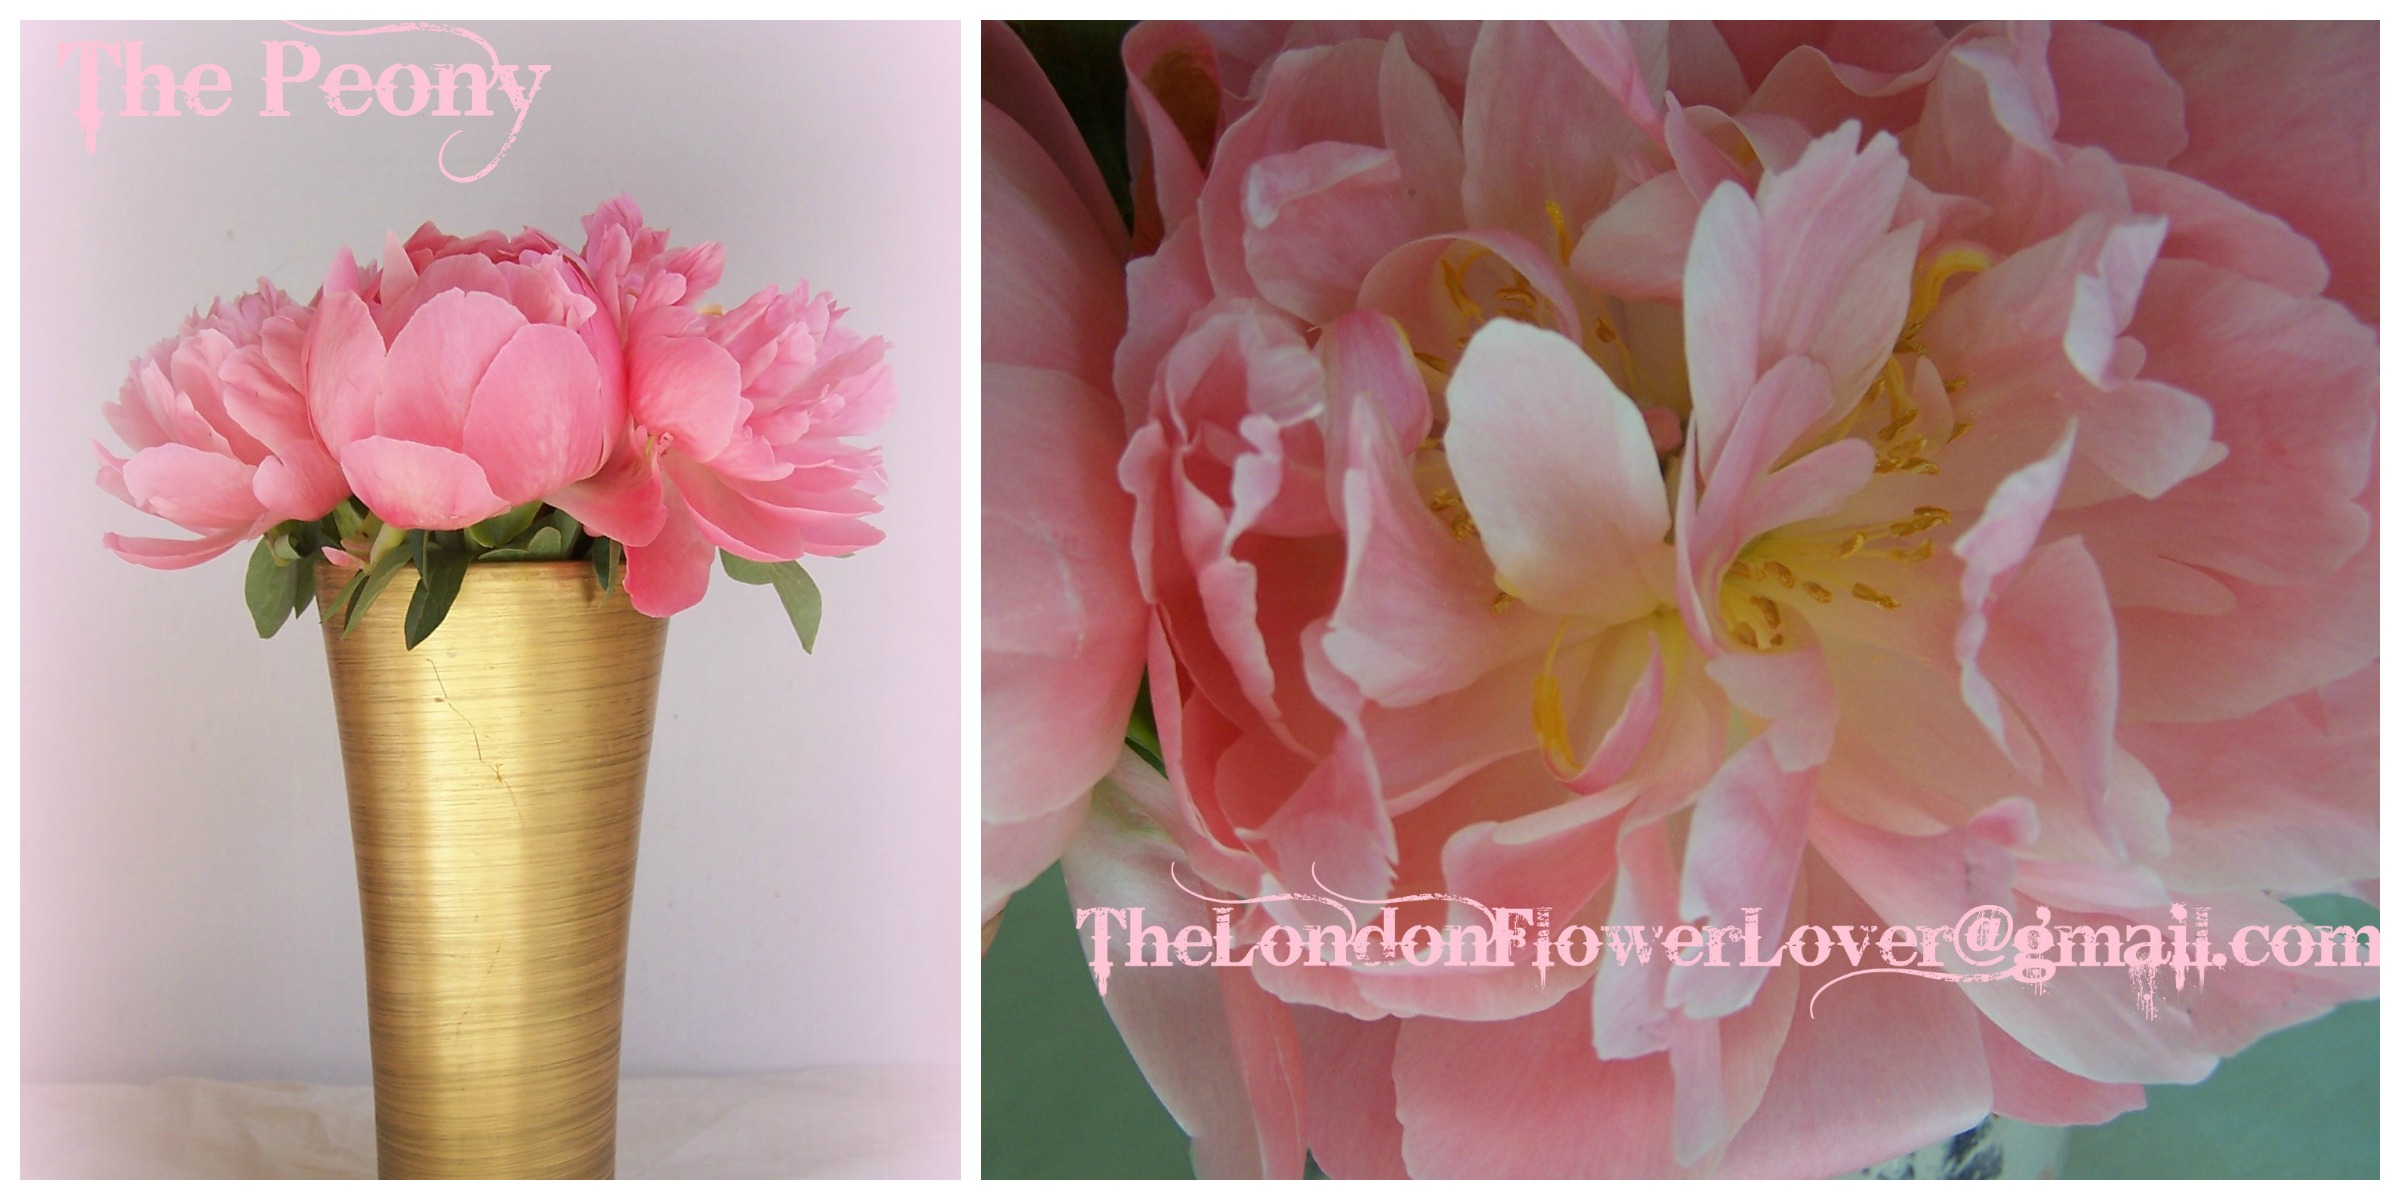 The Bride of Wedding flowers is here: The Peony flower means